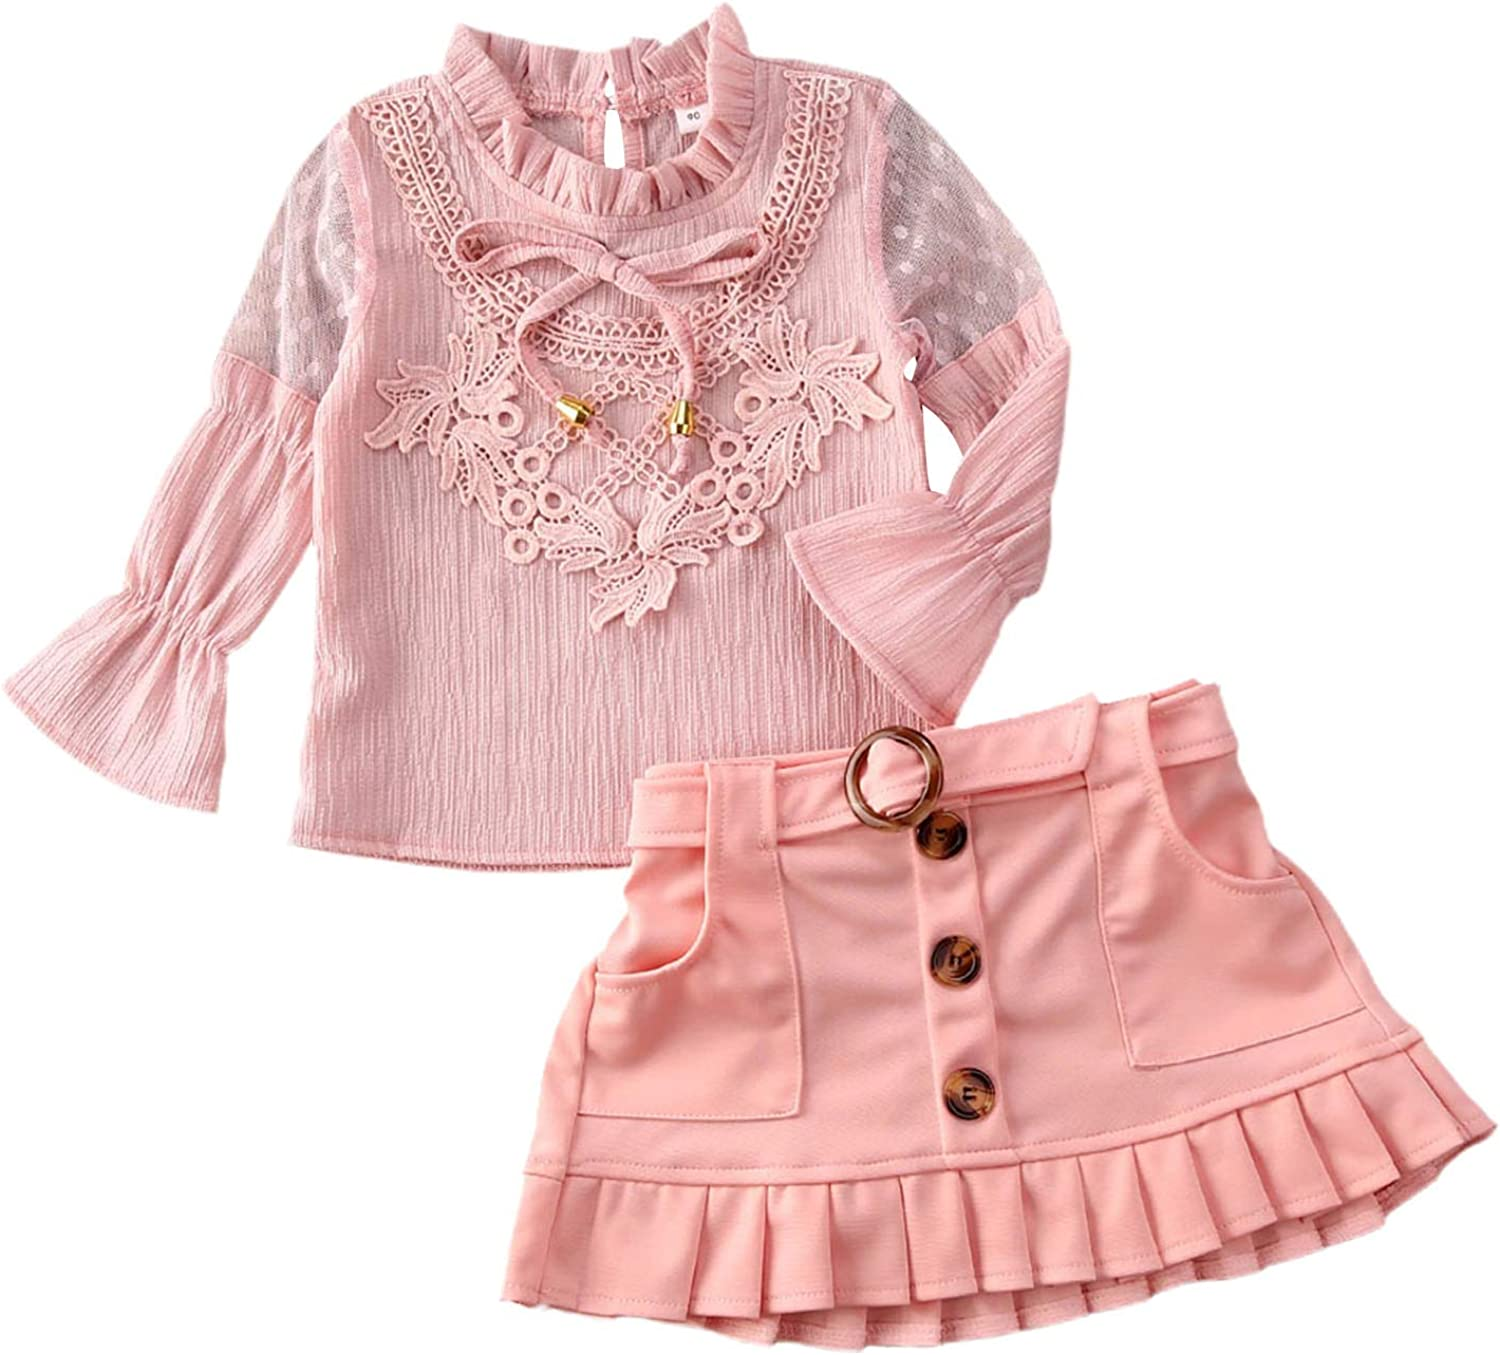 2Pcs Kid Girl Summer Fixed price for 70% OFF Outlet sale Outfits Pink A-line Top Skirt T-Short Mini